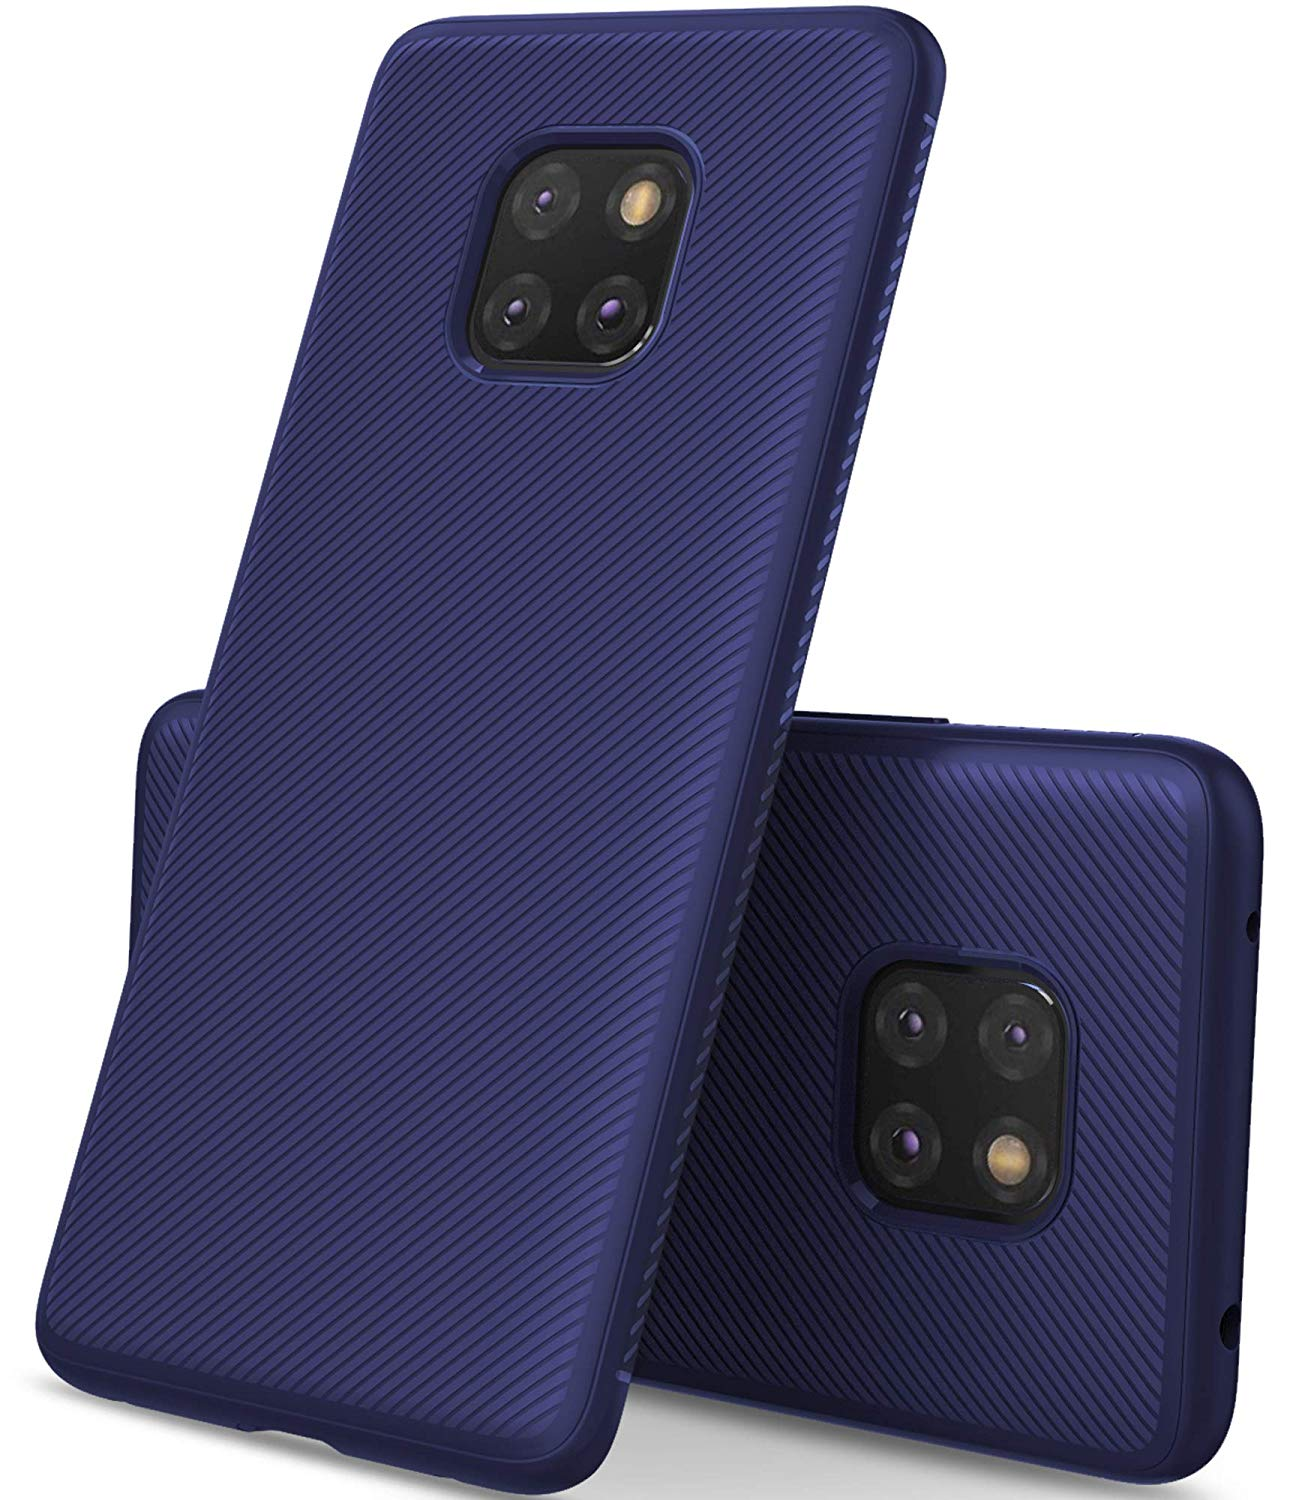 The best Huawei Mate 20 Pro cases: Clear, slim, ultra thin, armor ...